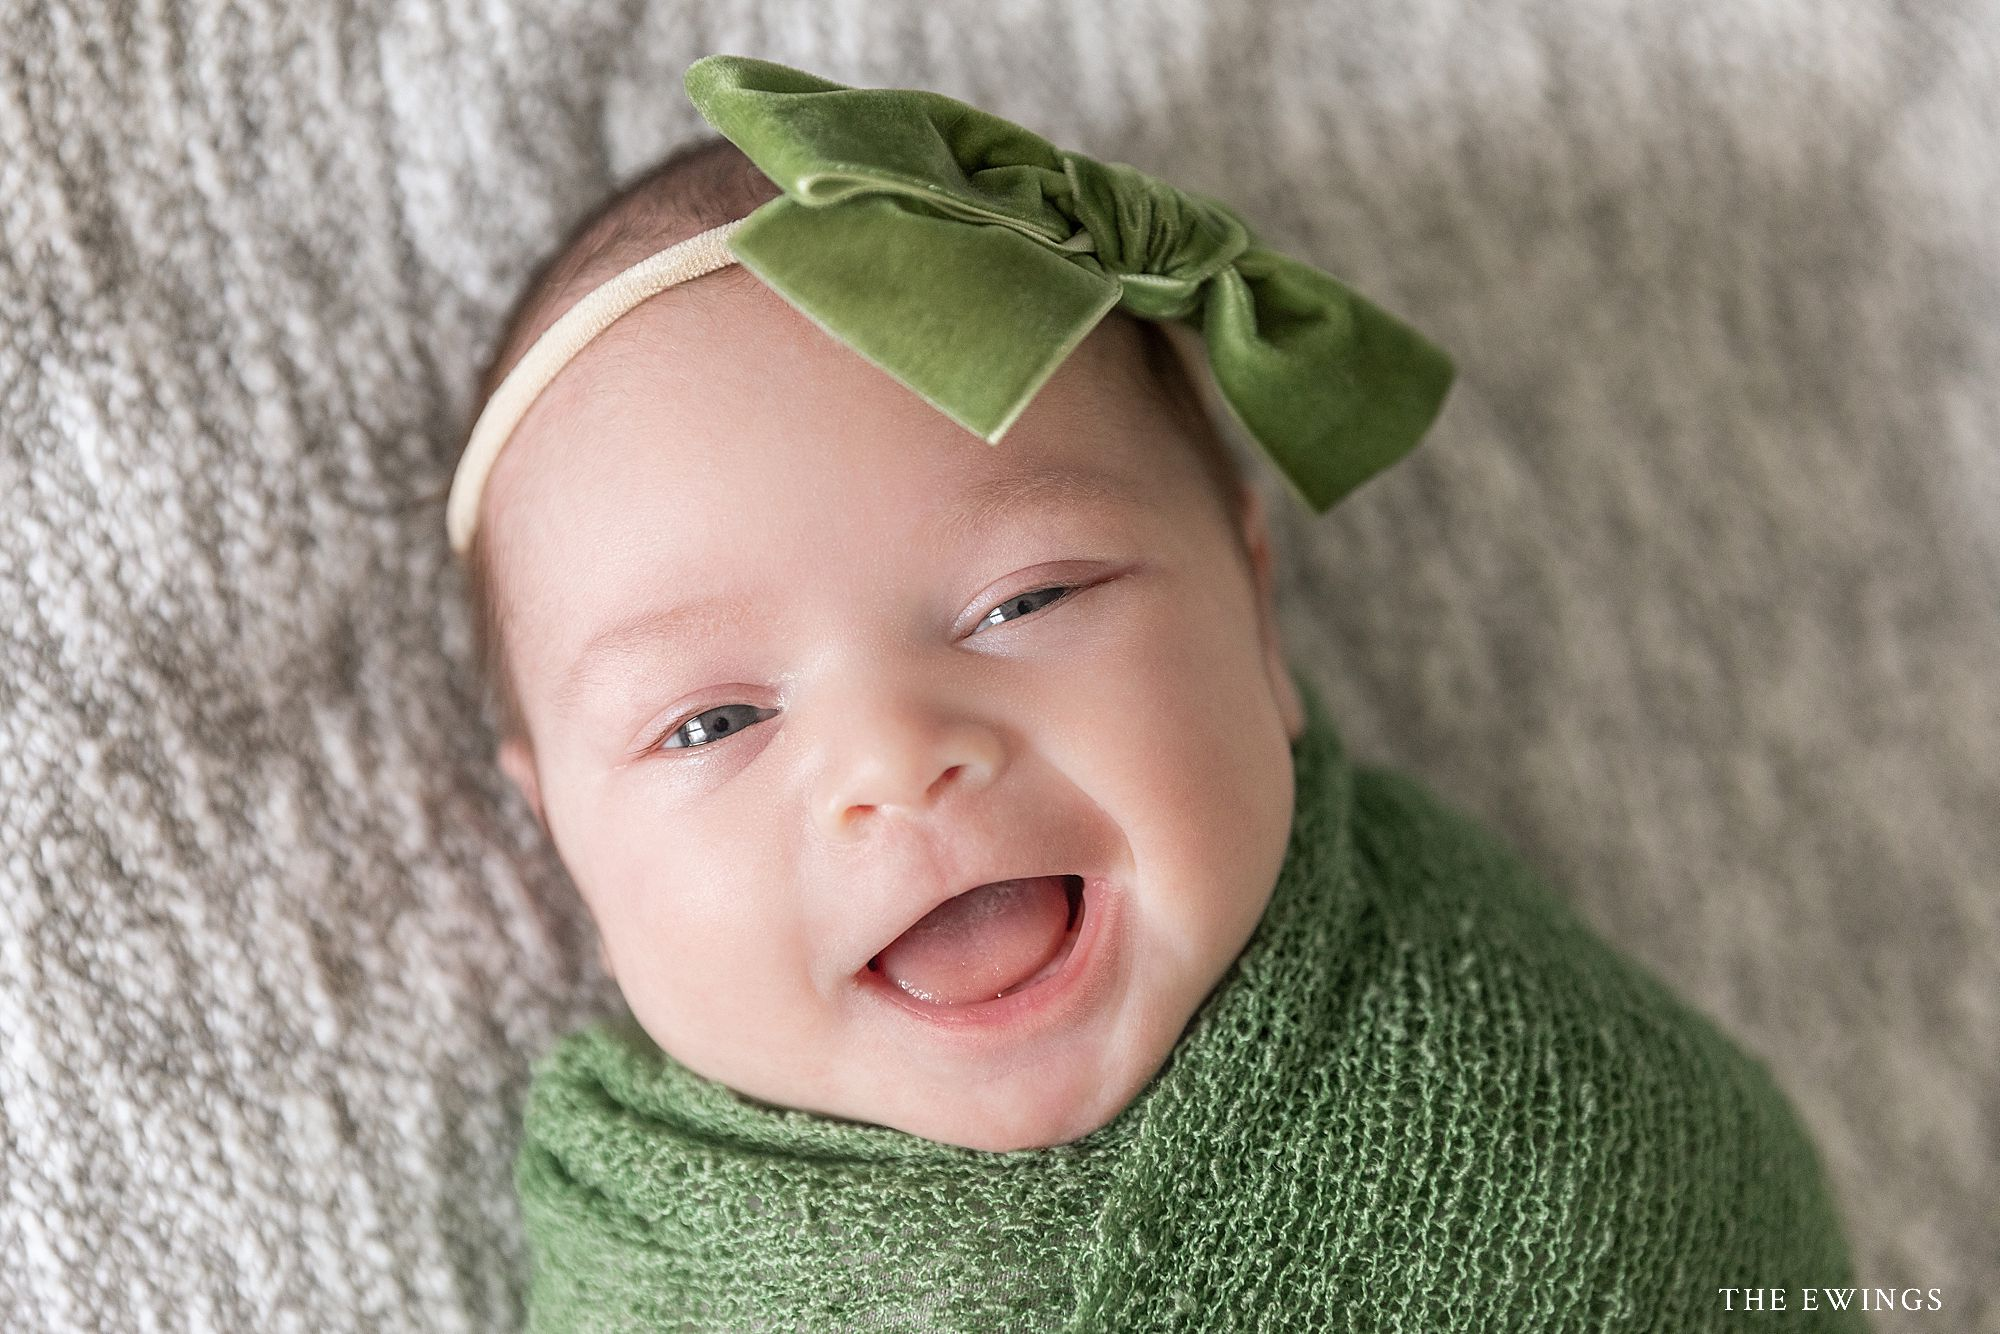 Big belly laughs during at Newborn Session at The Ewings, a portrait photography studio in North Central Massachusetts.